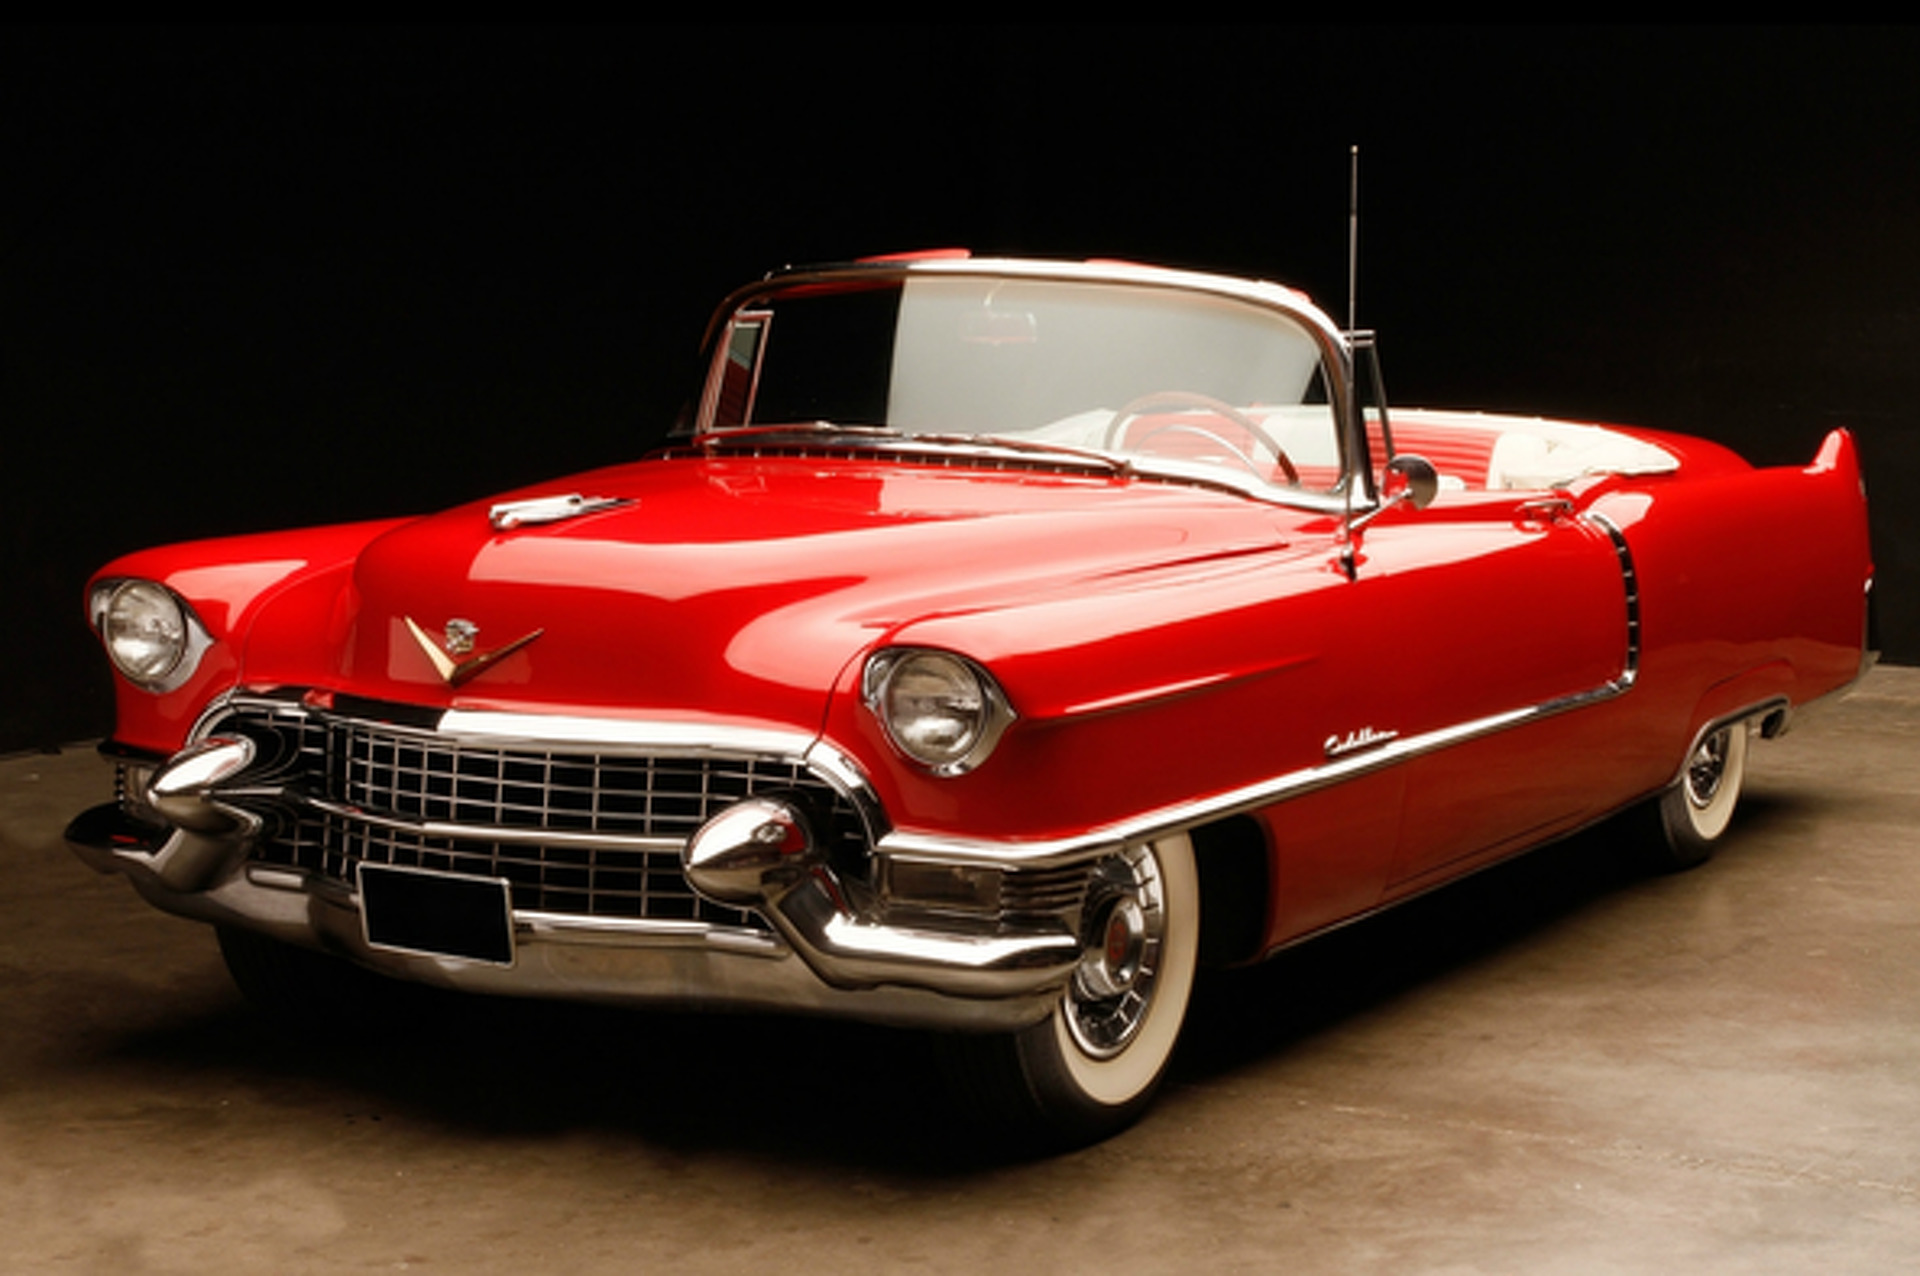 Wheels Wallpaper: 1954 Cadillac Series 62 Convertible Coupe